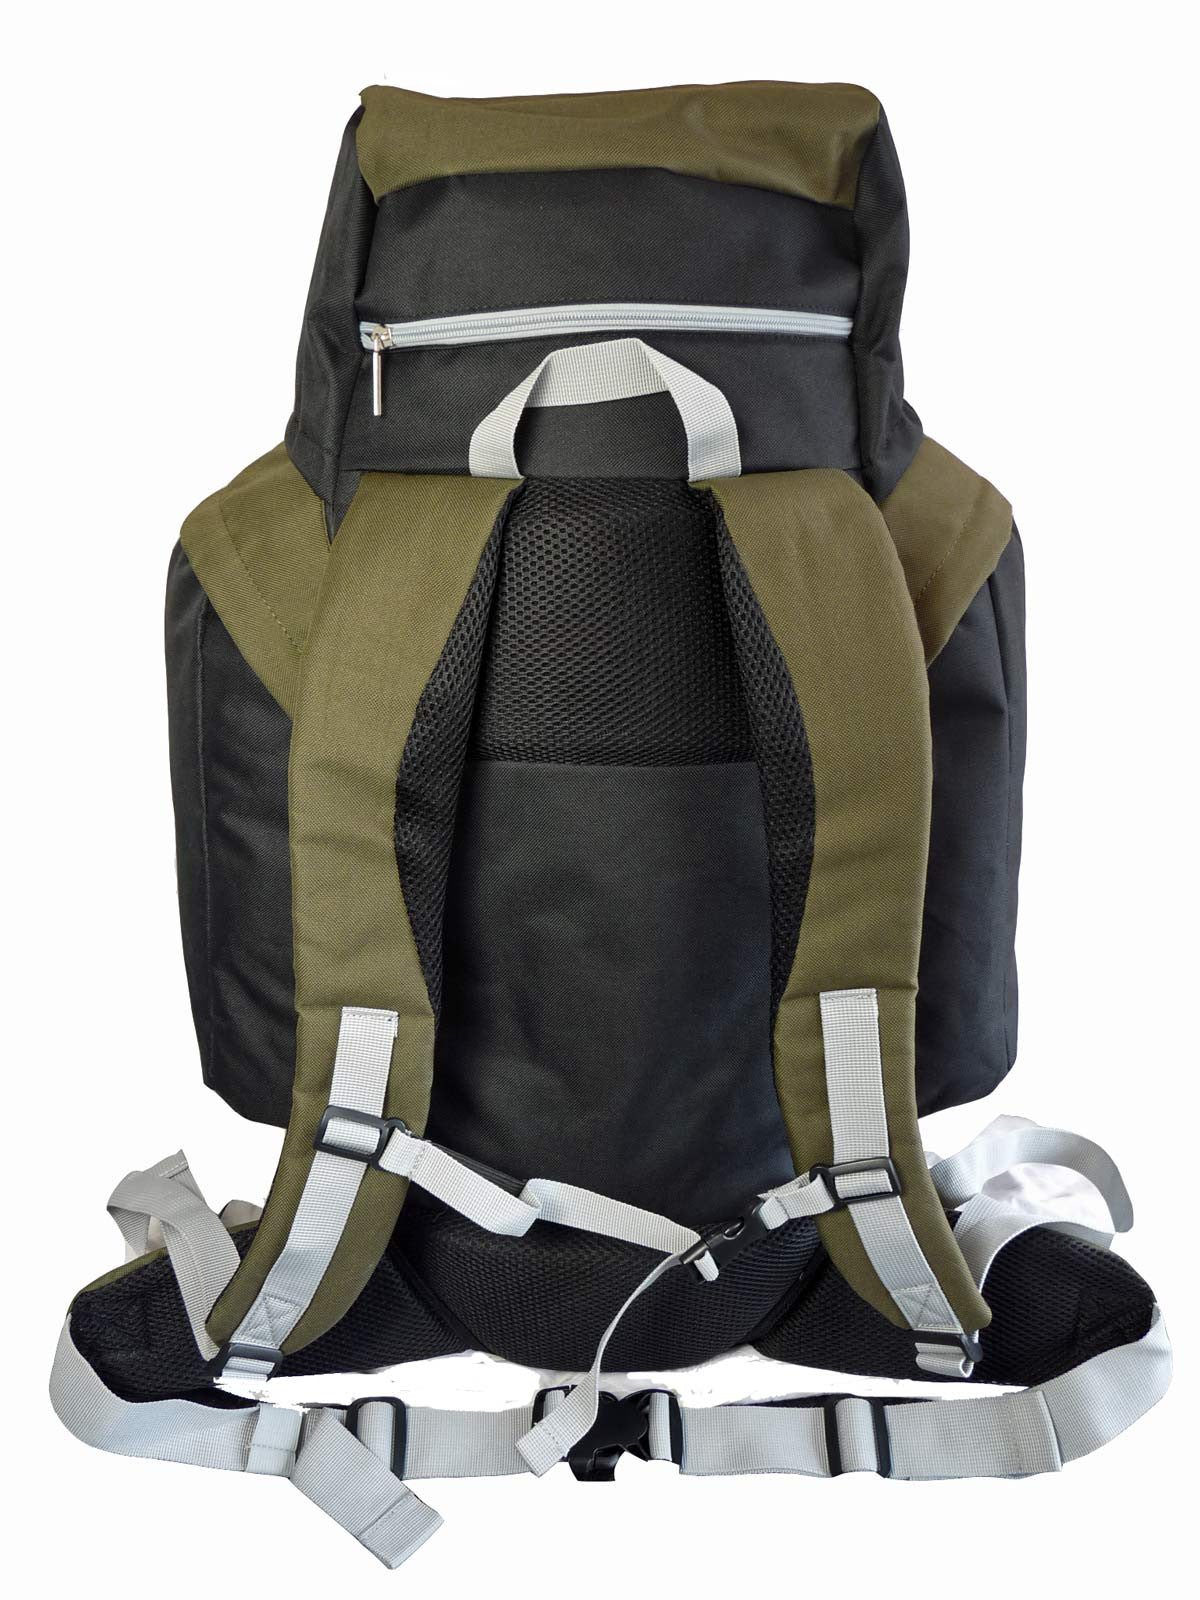 80 100 125 litre backpack green rear view